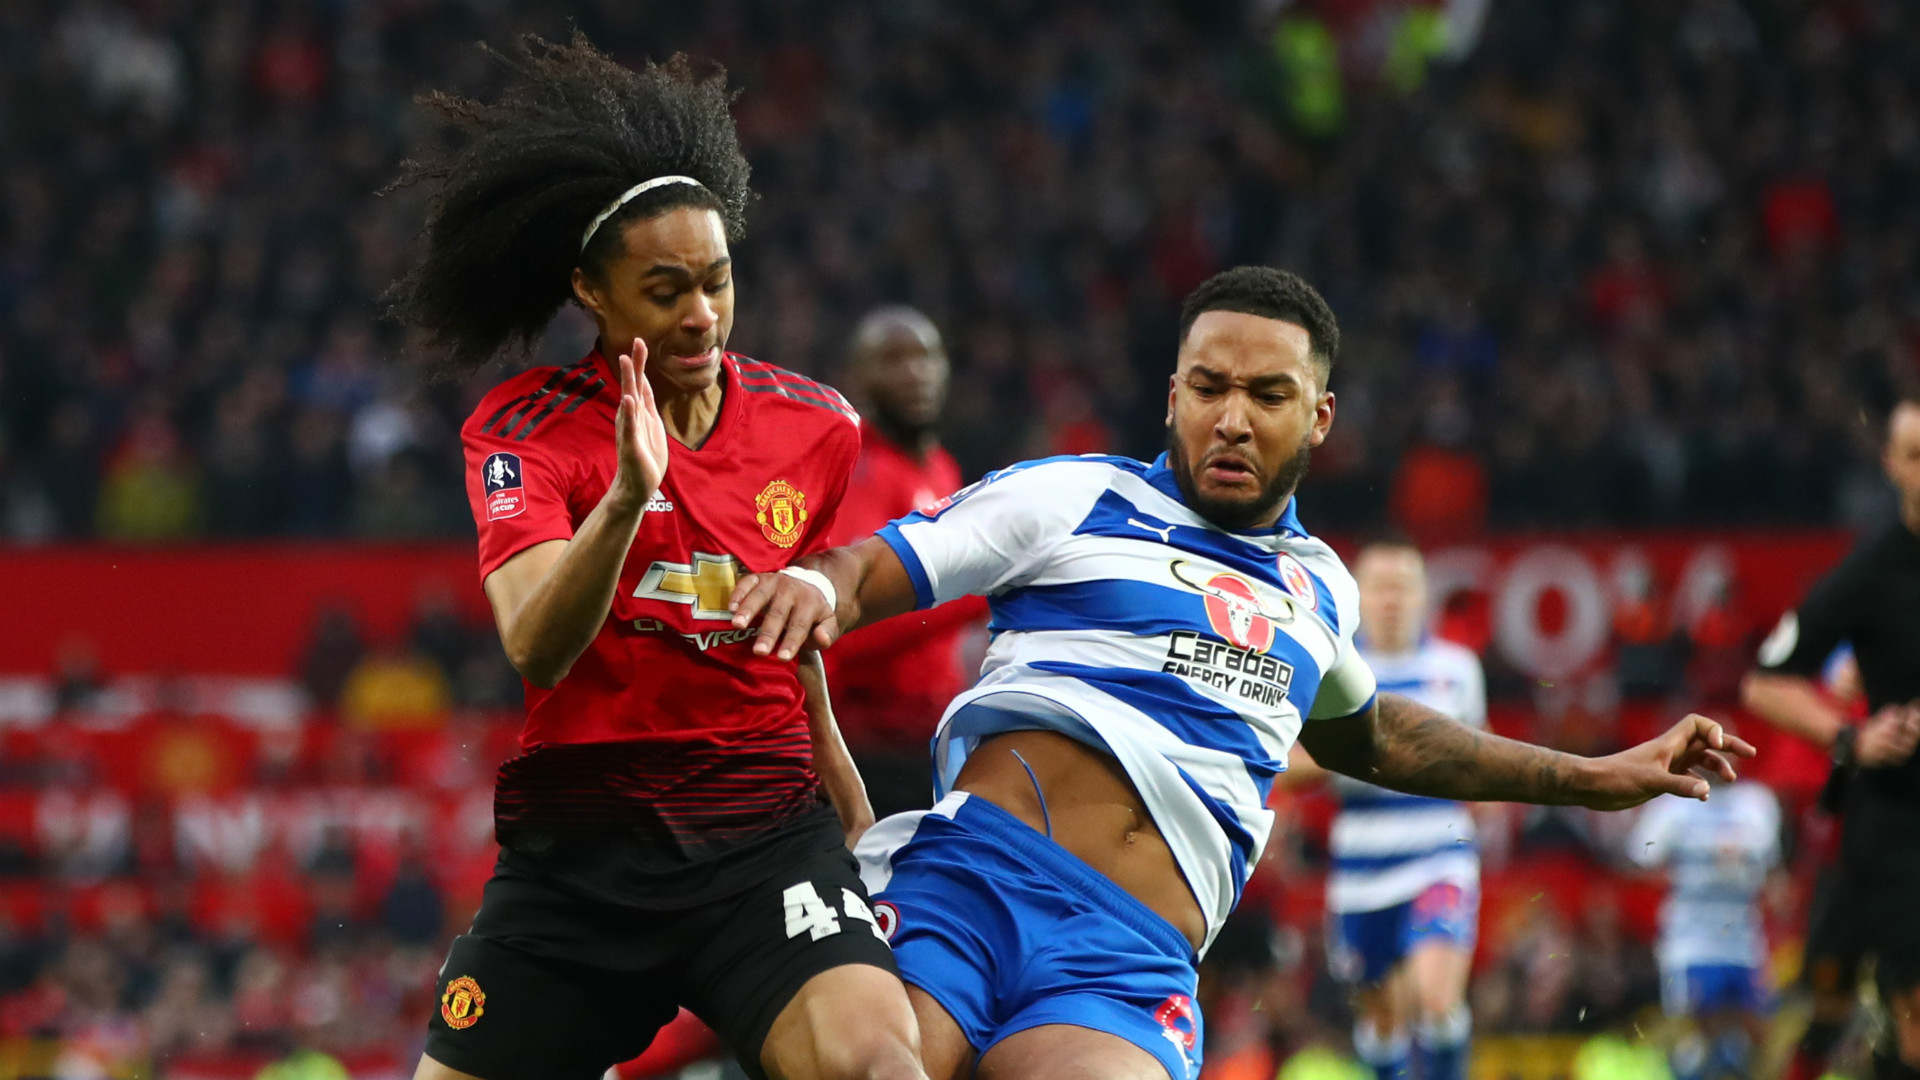 Man Utd 2 Reading 0: Tahith Chong salutes Ole Gunnar Solskjaer impact as he follows in Angel Gomes' footsteps